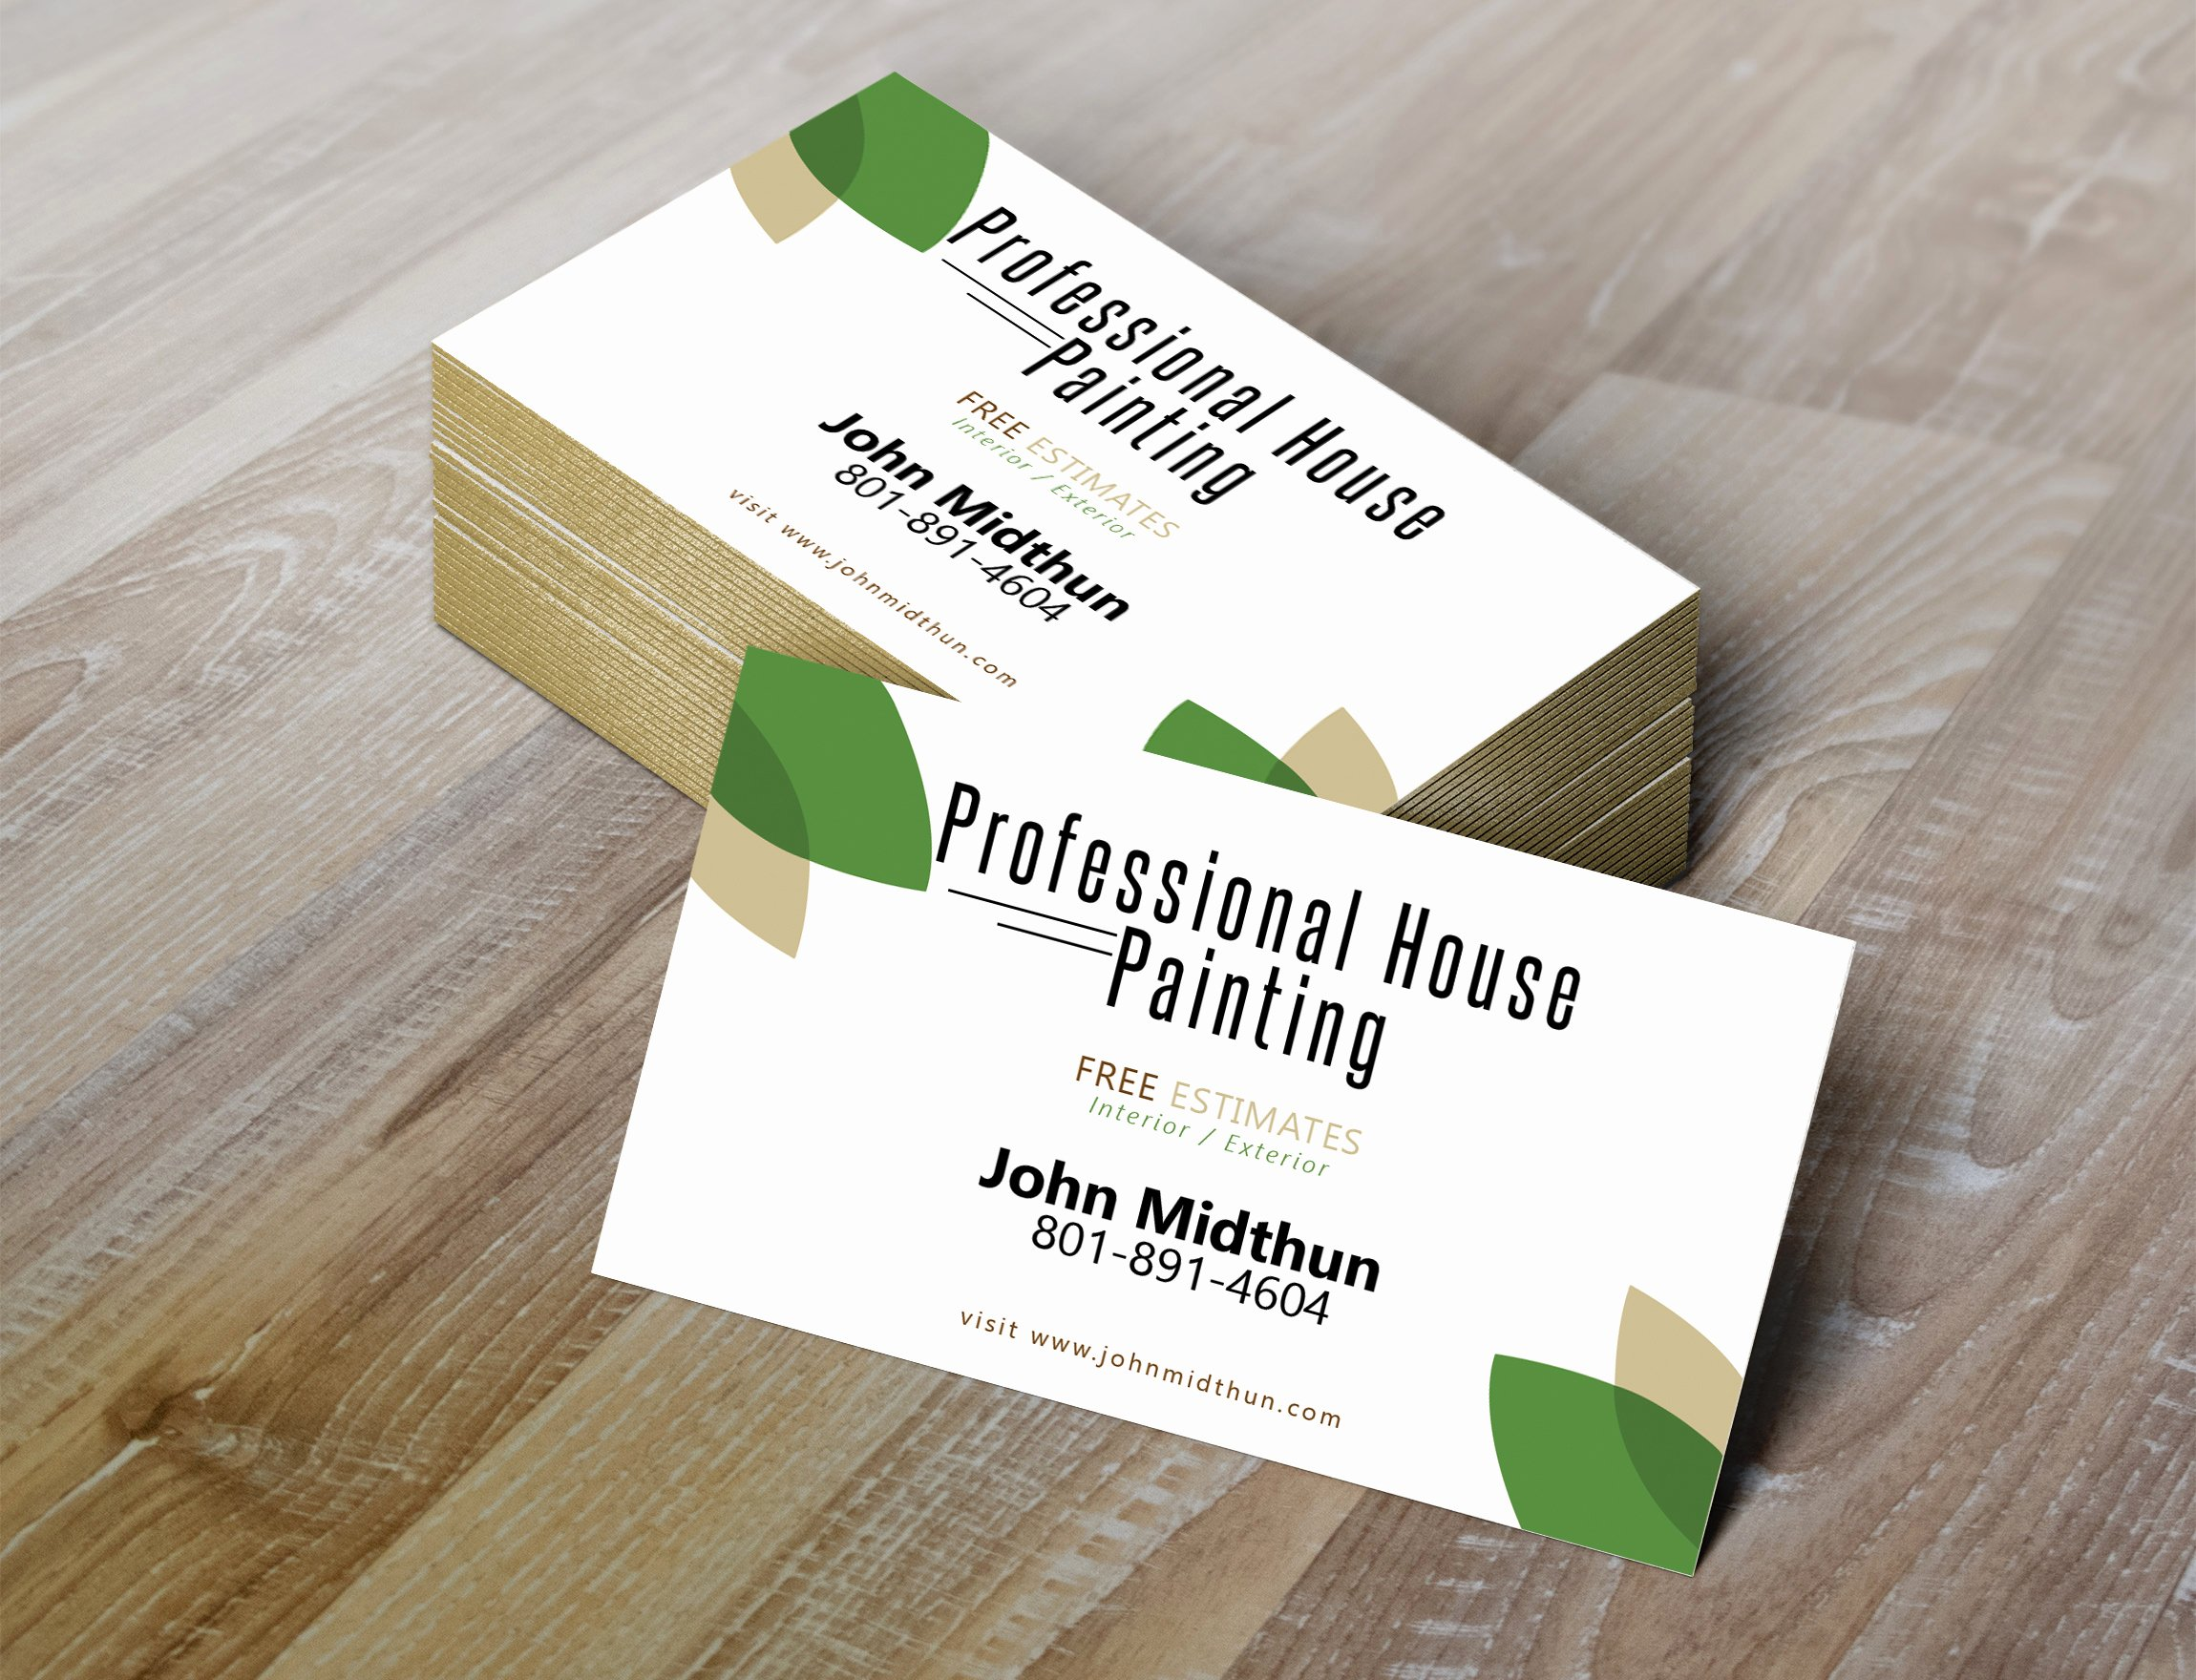 Painting Business Cards Ideas New Professional House Painting Business Card